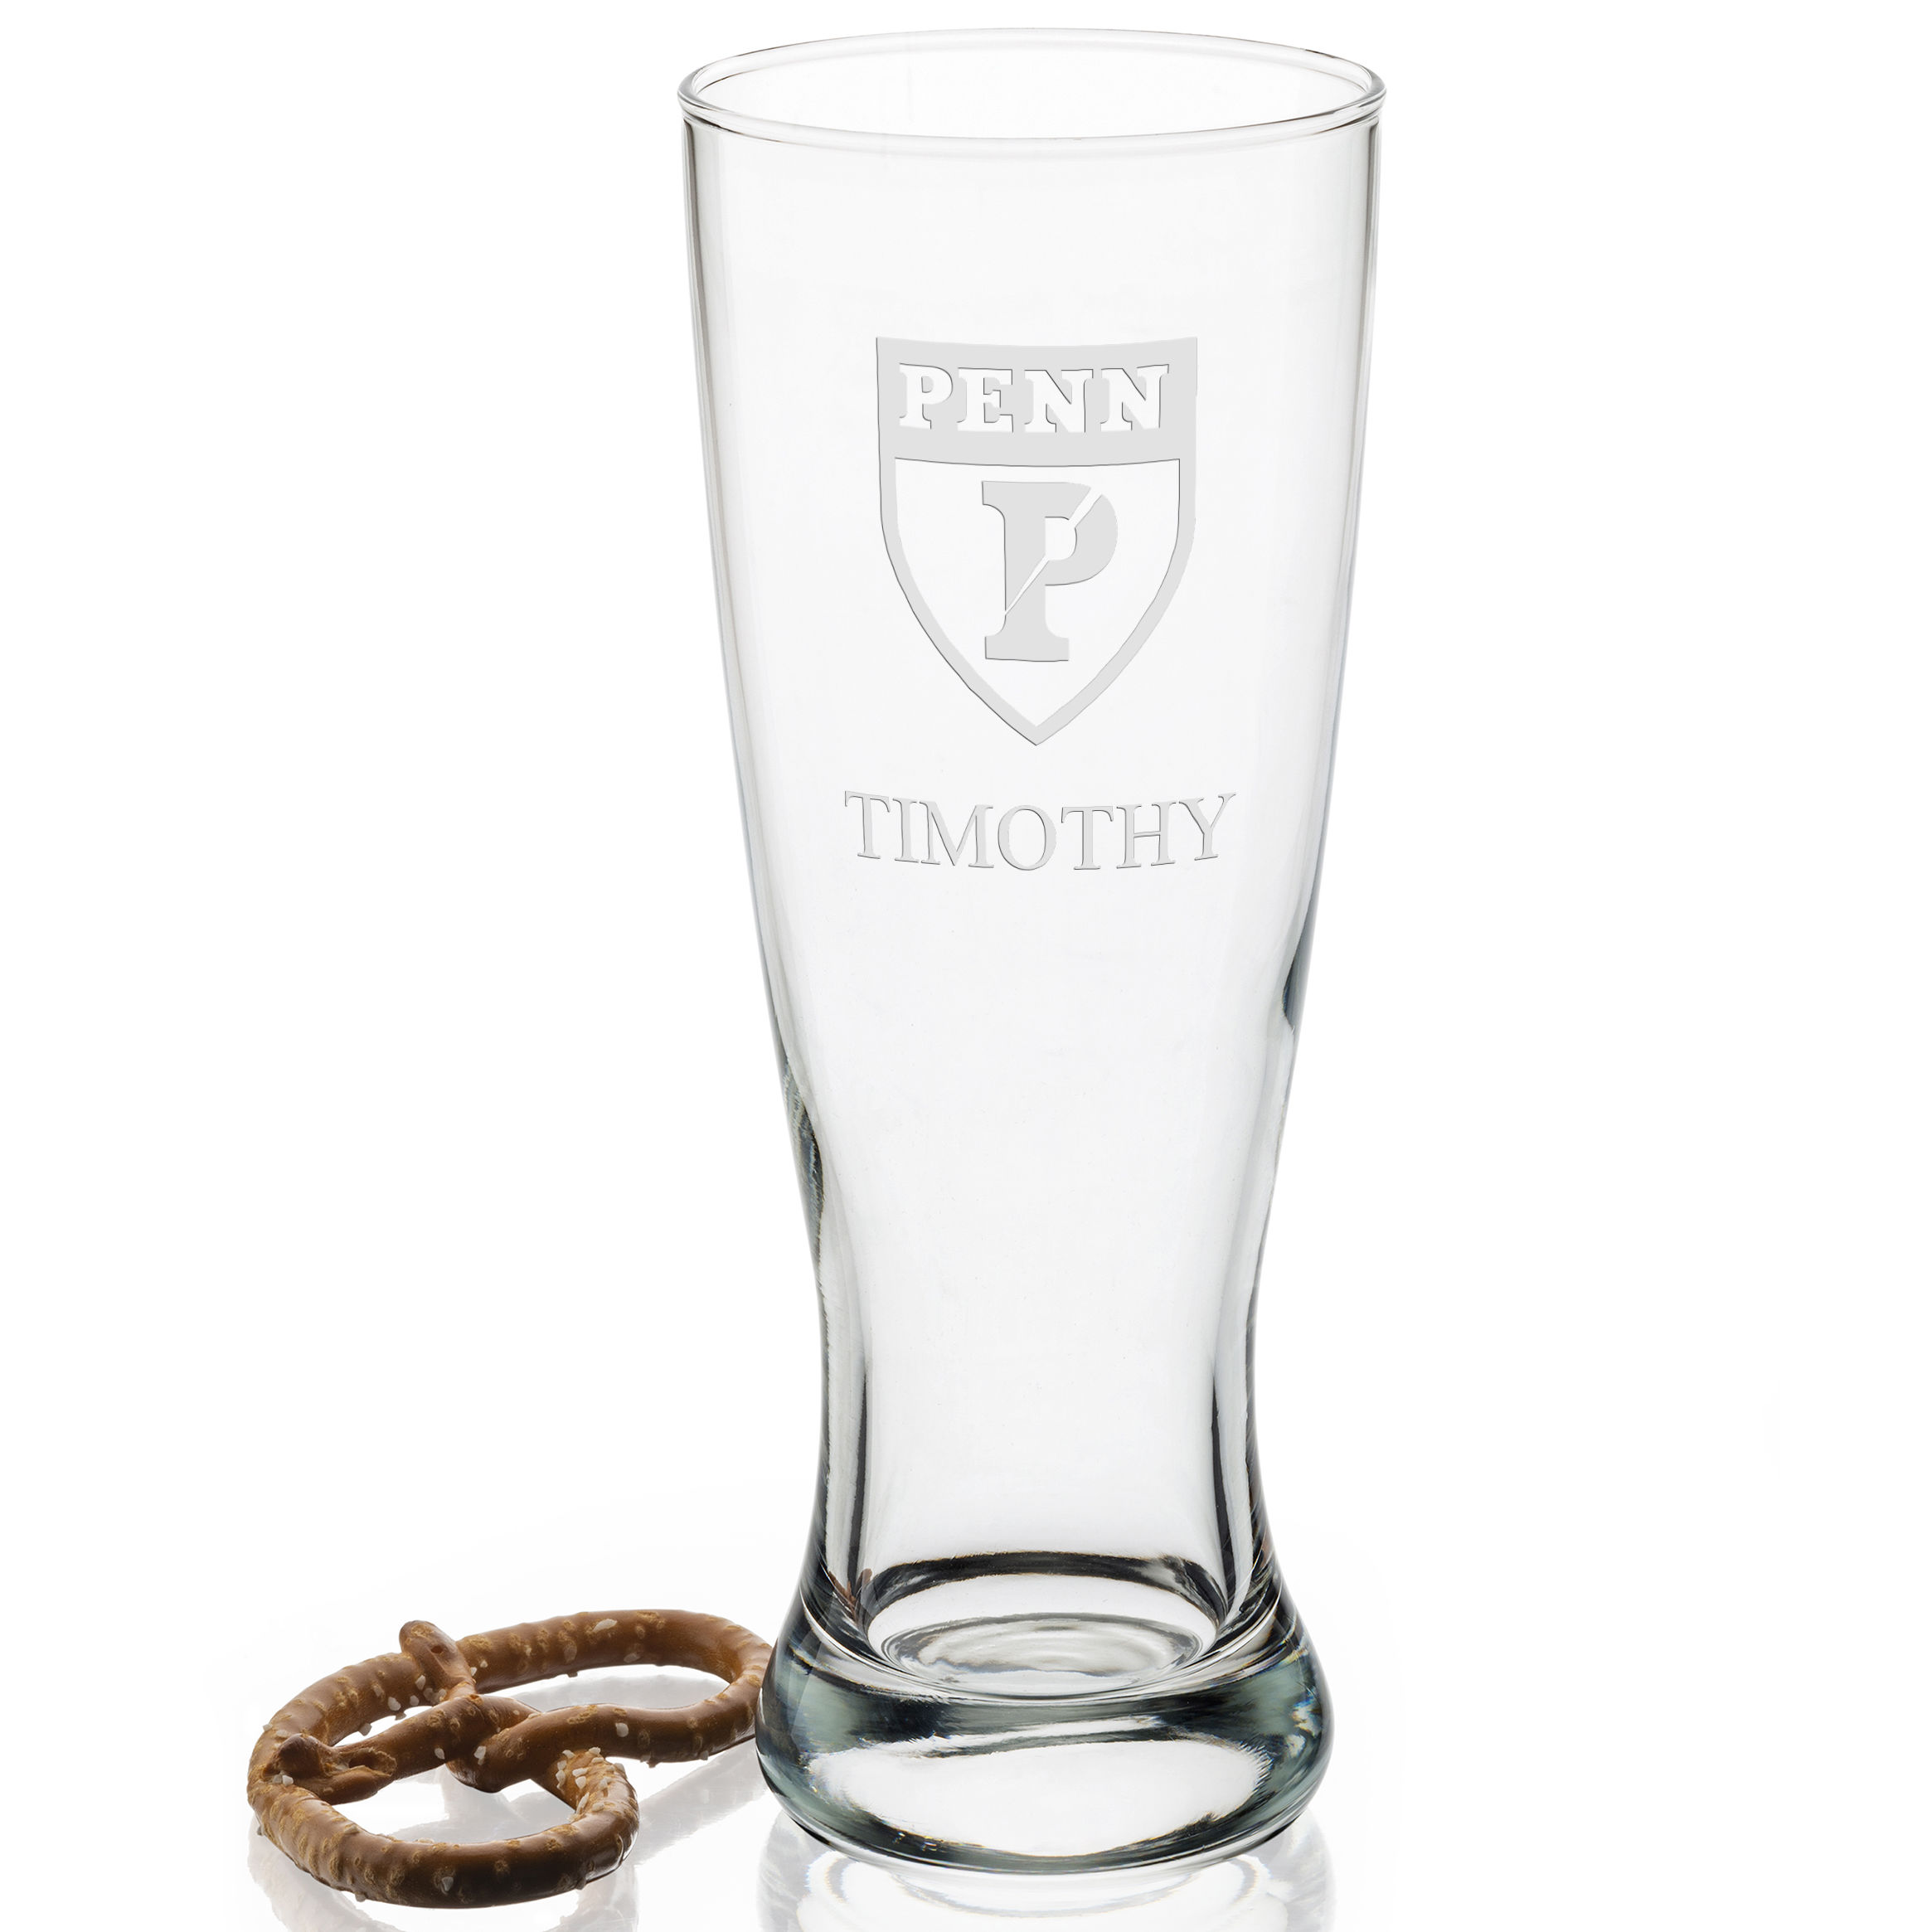 Penn Tall 20oz Pilsner Glasses - Set of 2 - Image 2